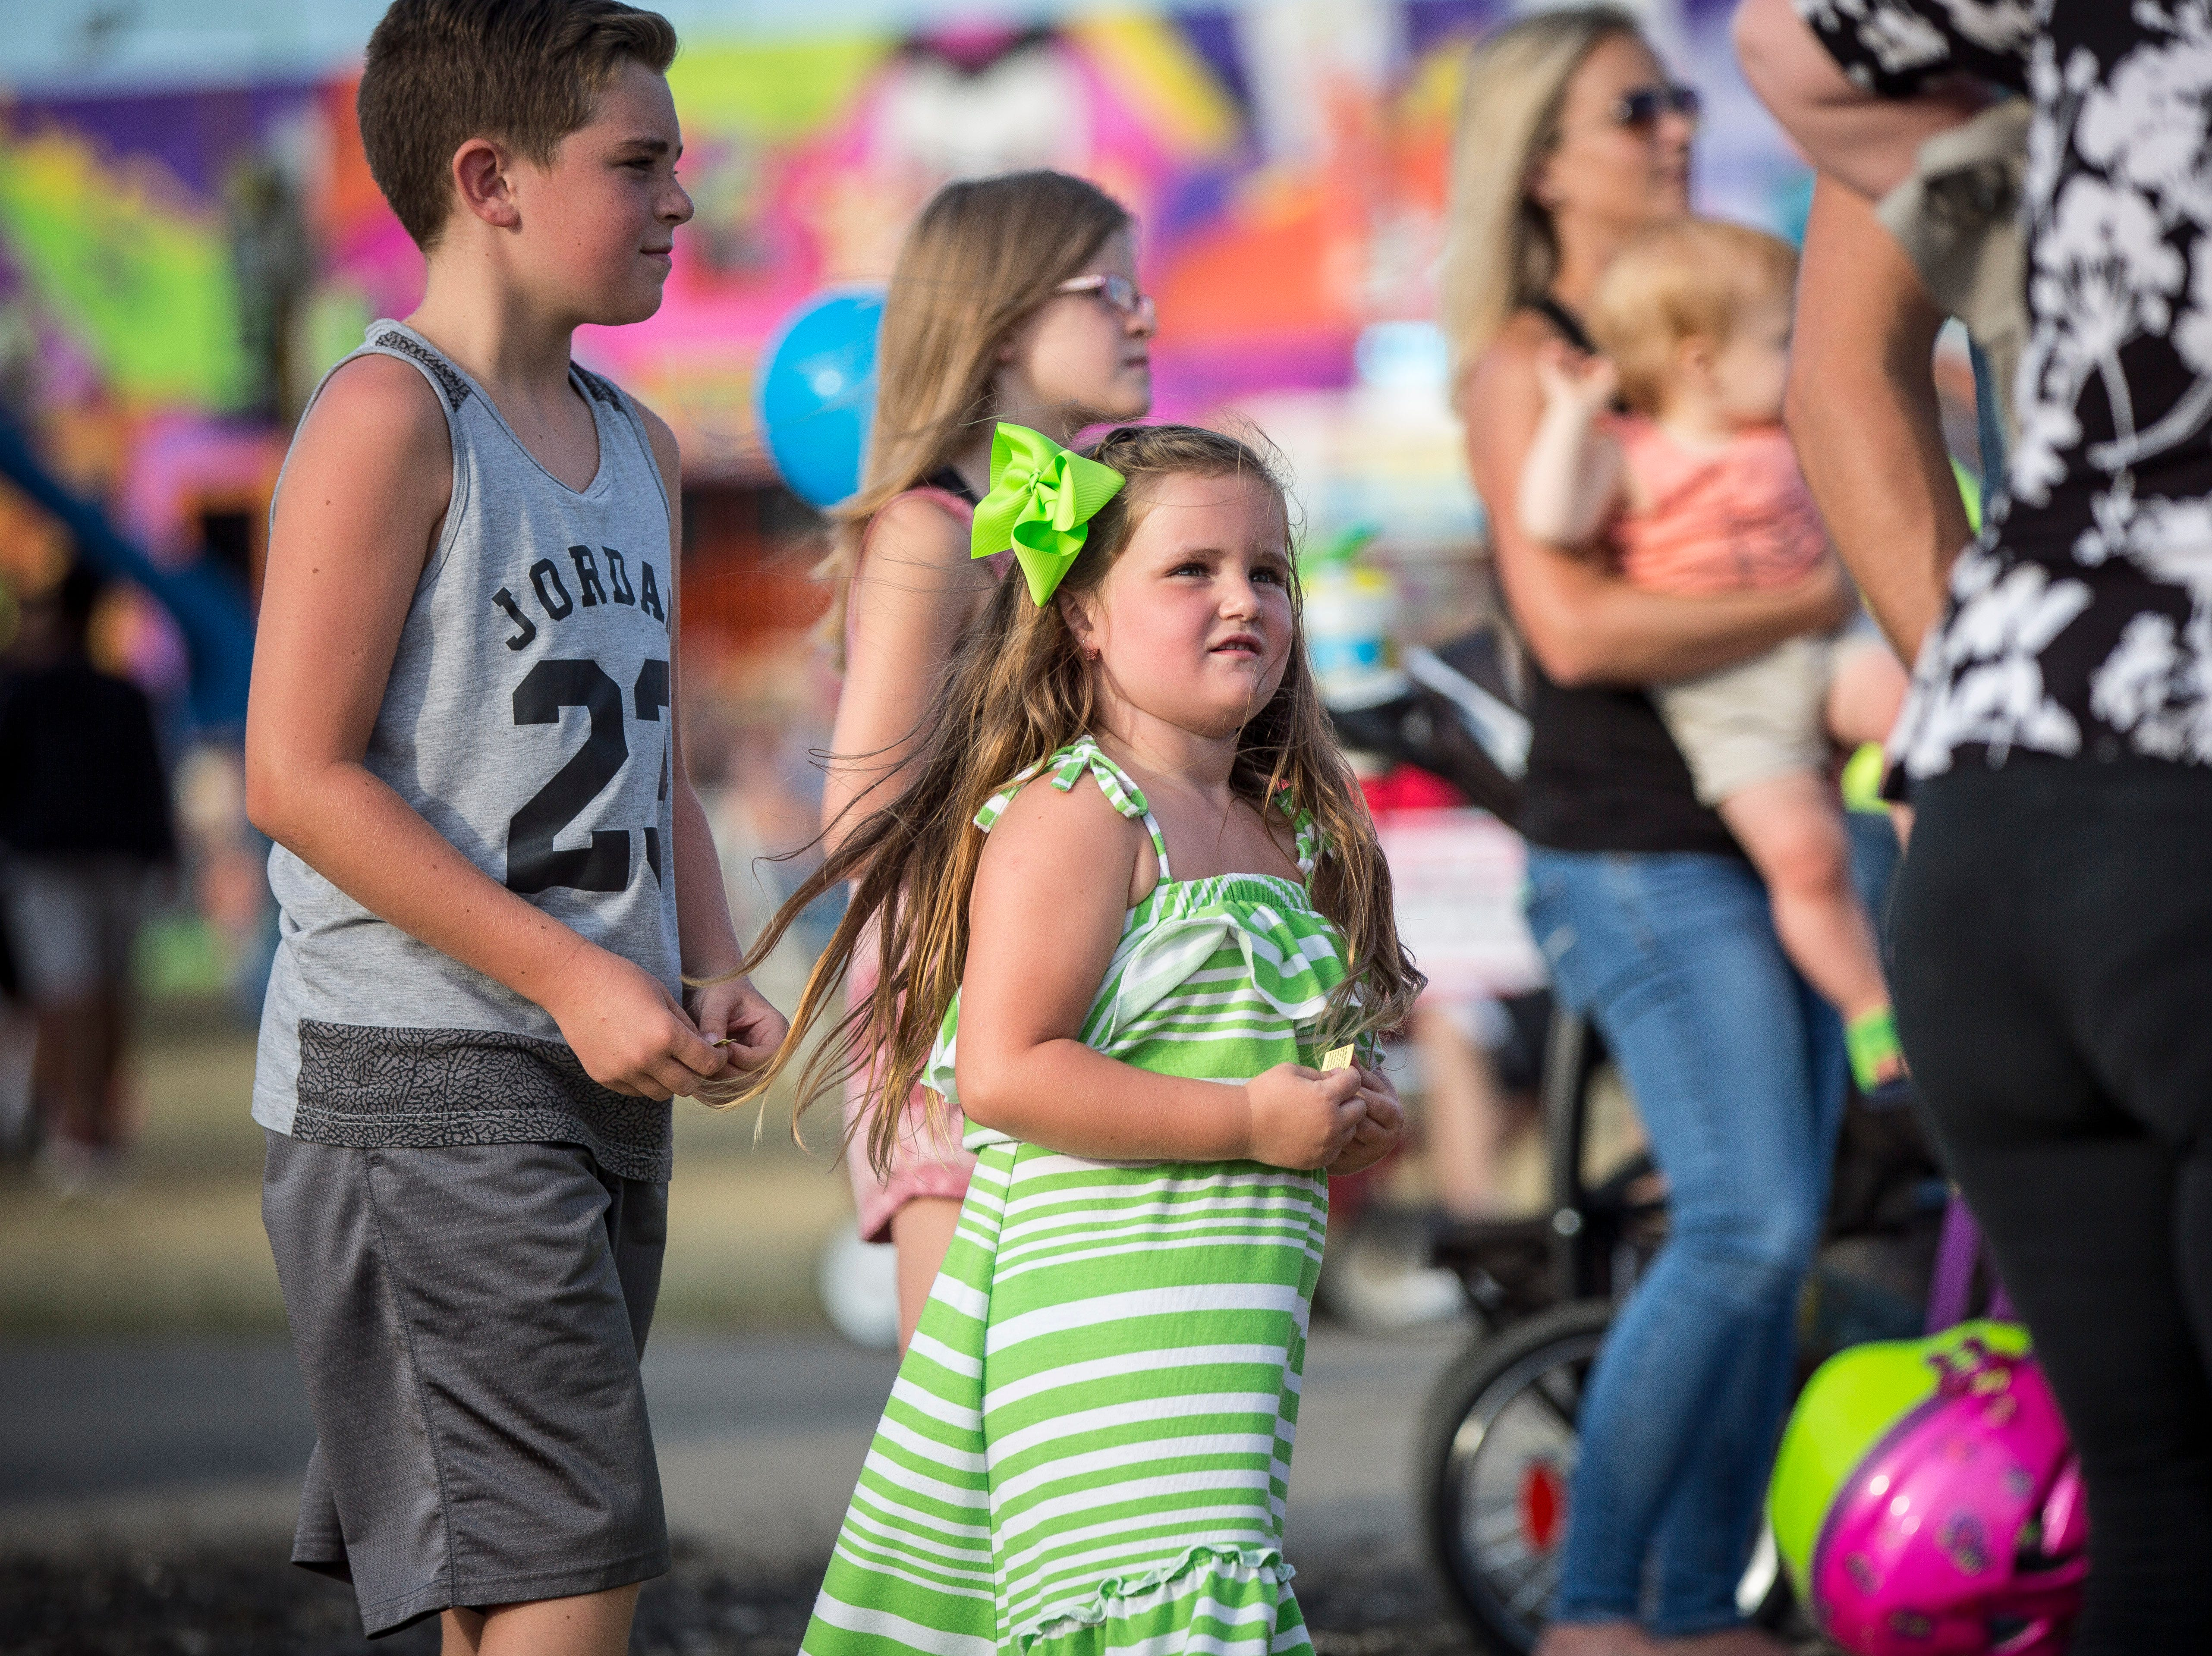 From baseball caps to overalls and cutoff jeans, there is a wide array of fashion at the Delaware County Fair.